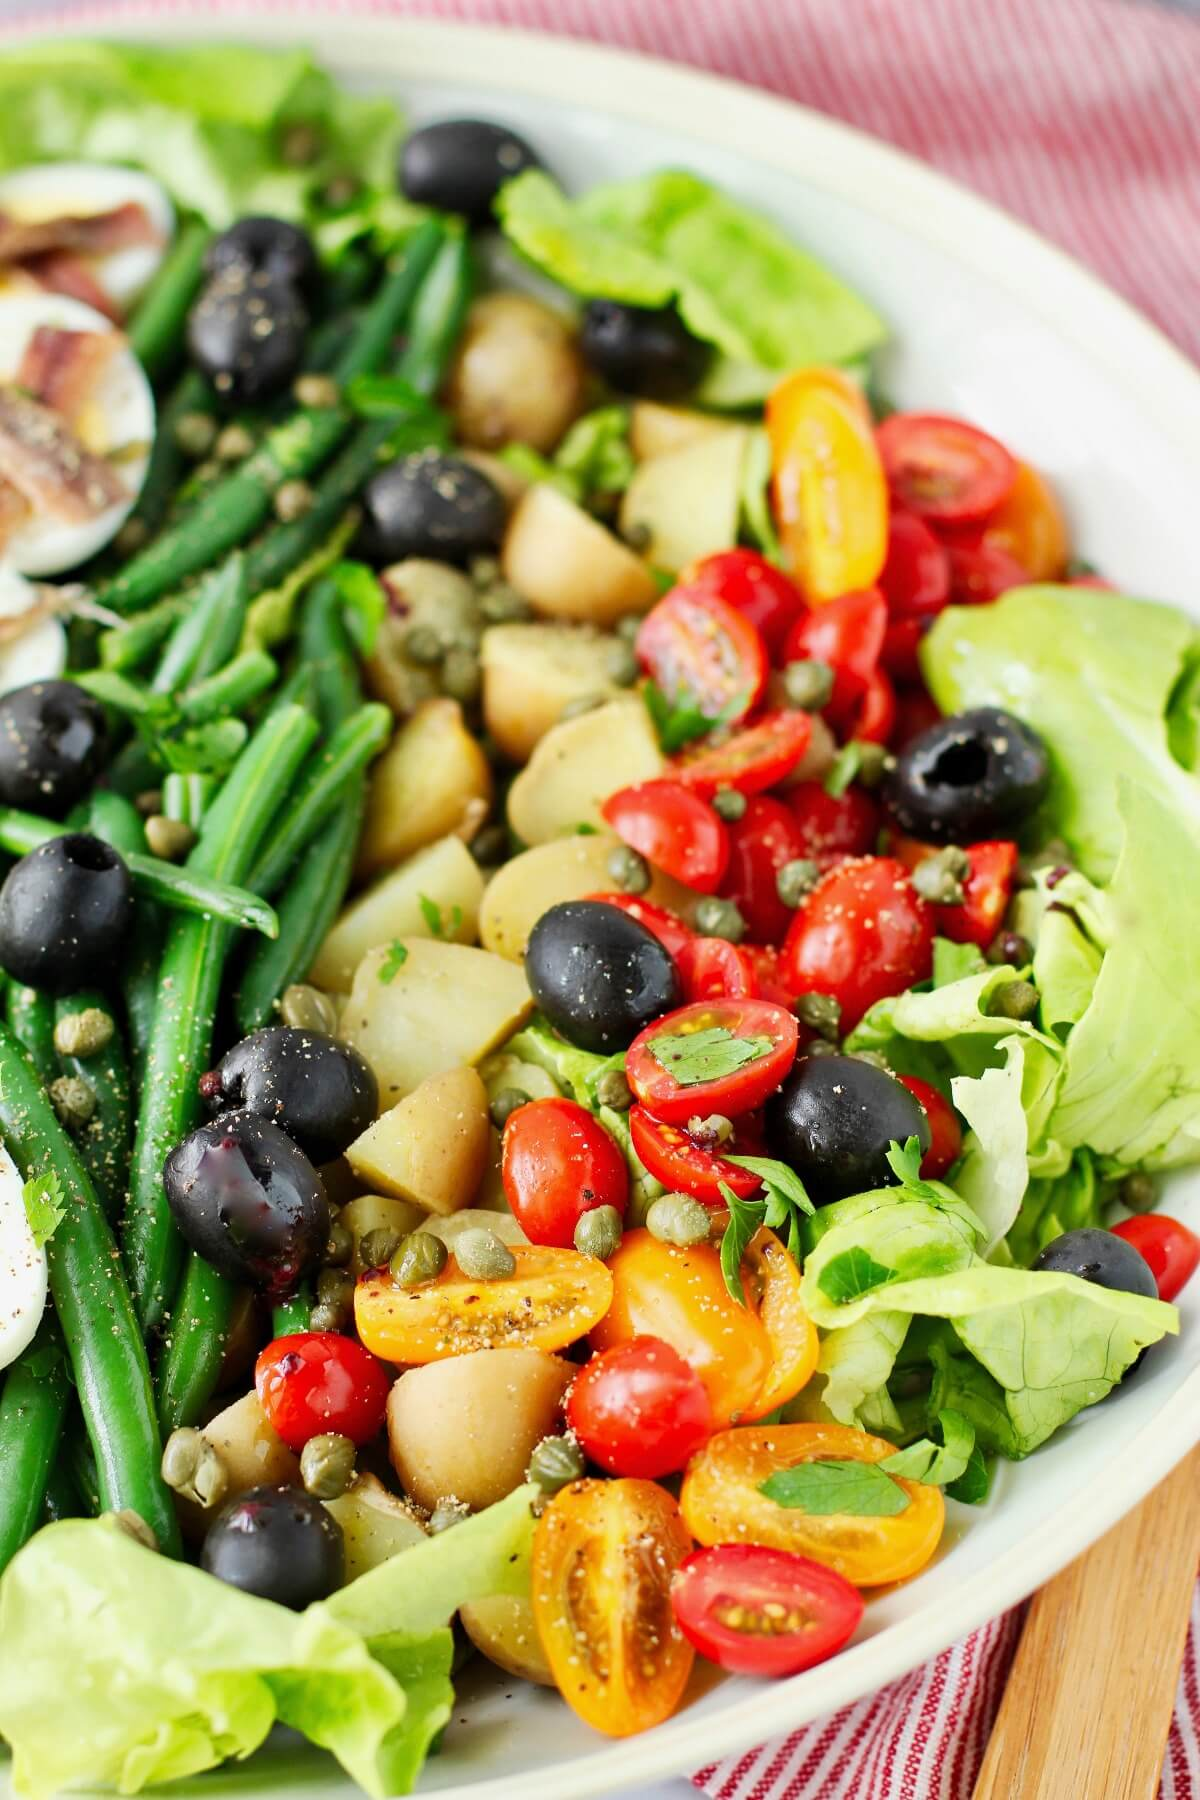 Salade Niçoise with beans and potatoes